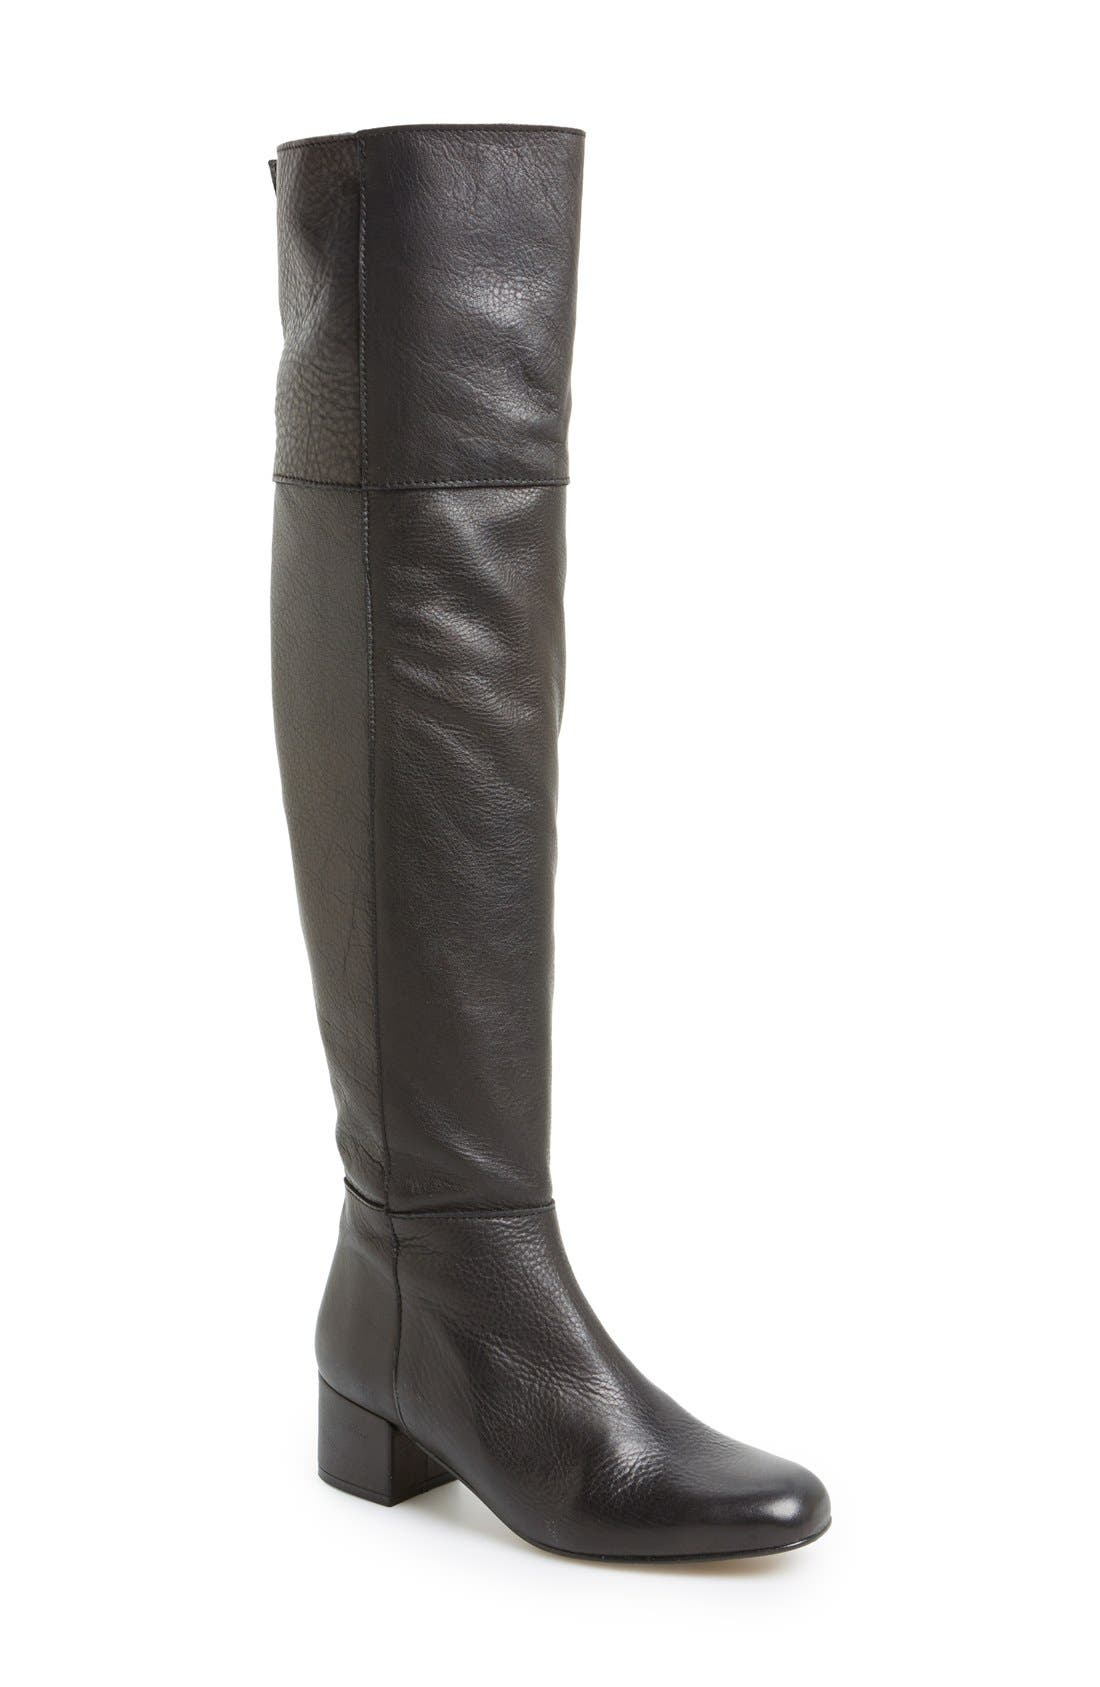 'Canada' Over the Knee Leather Boot,                             Main thumbnail 1, color,                             001